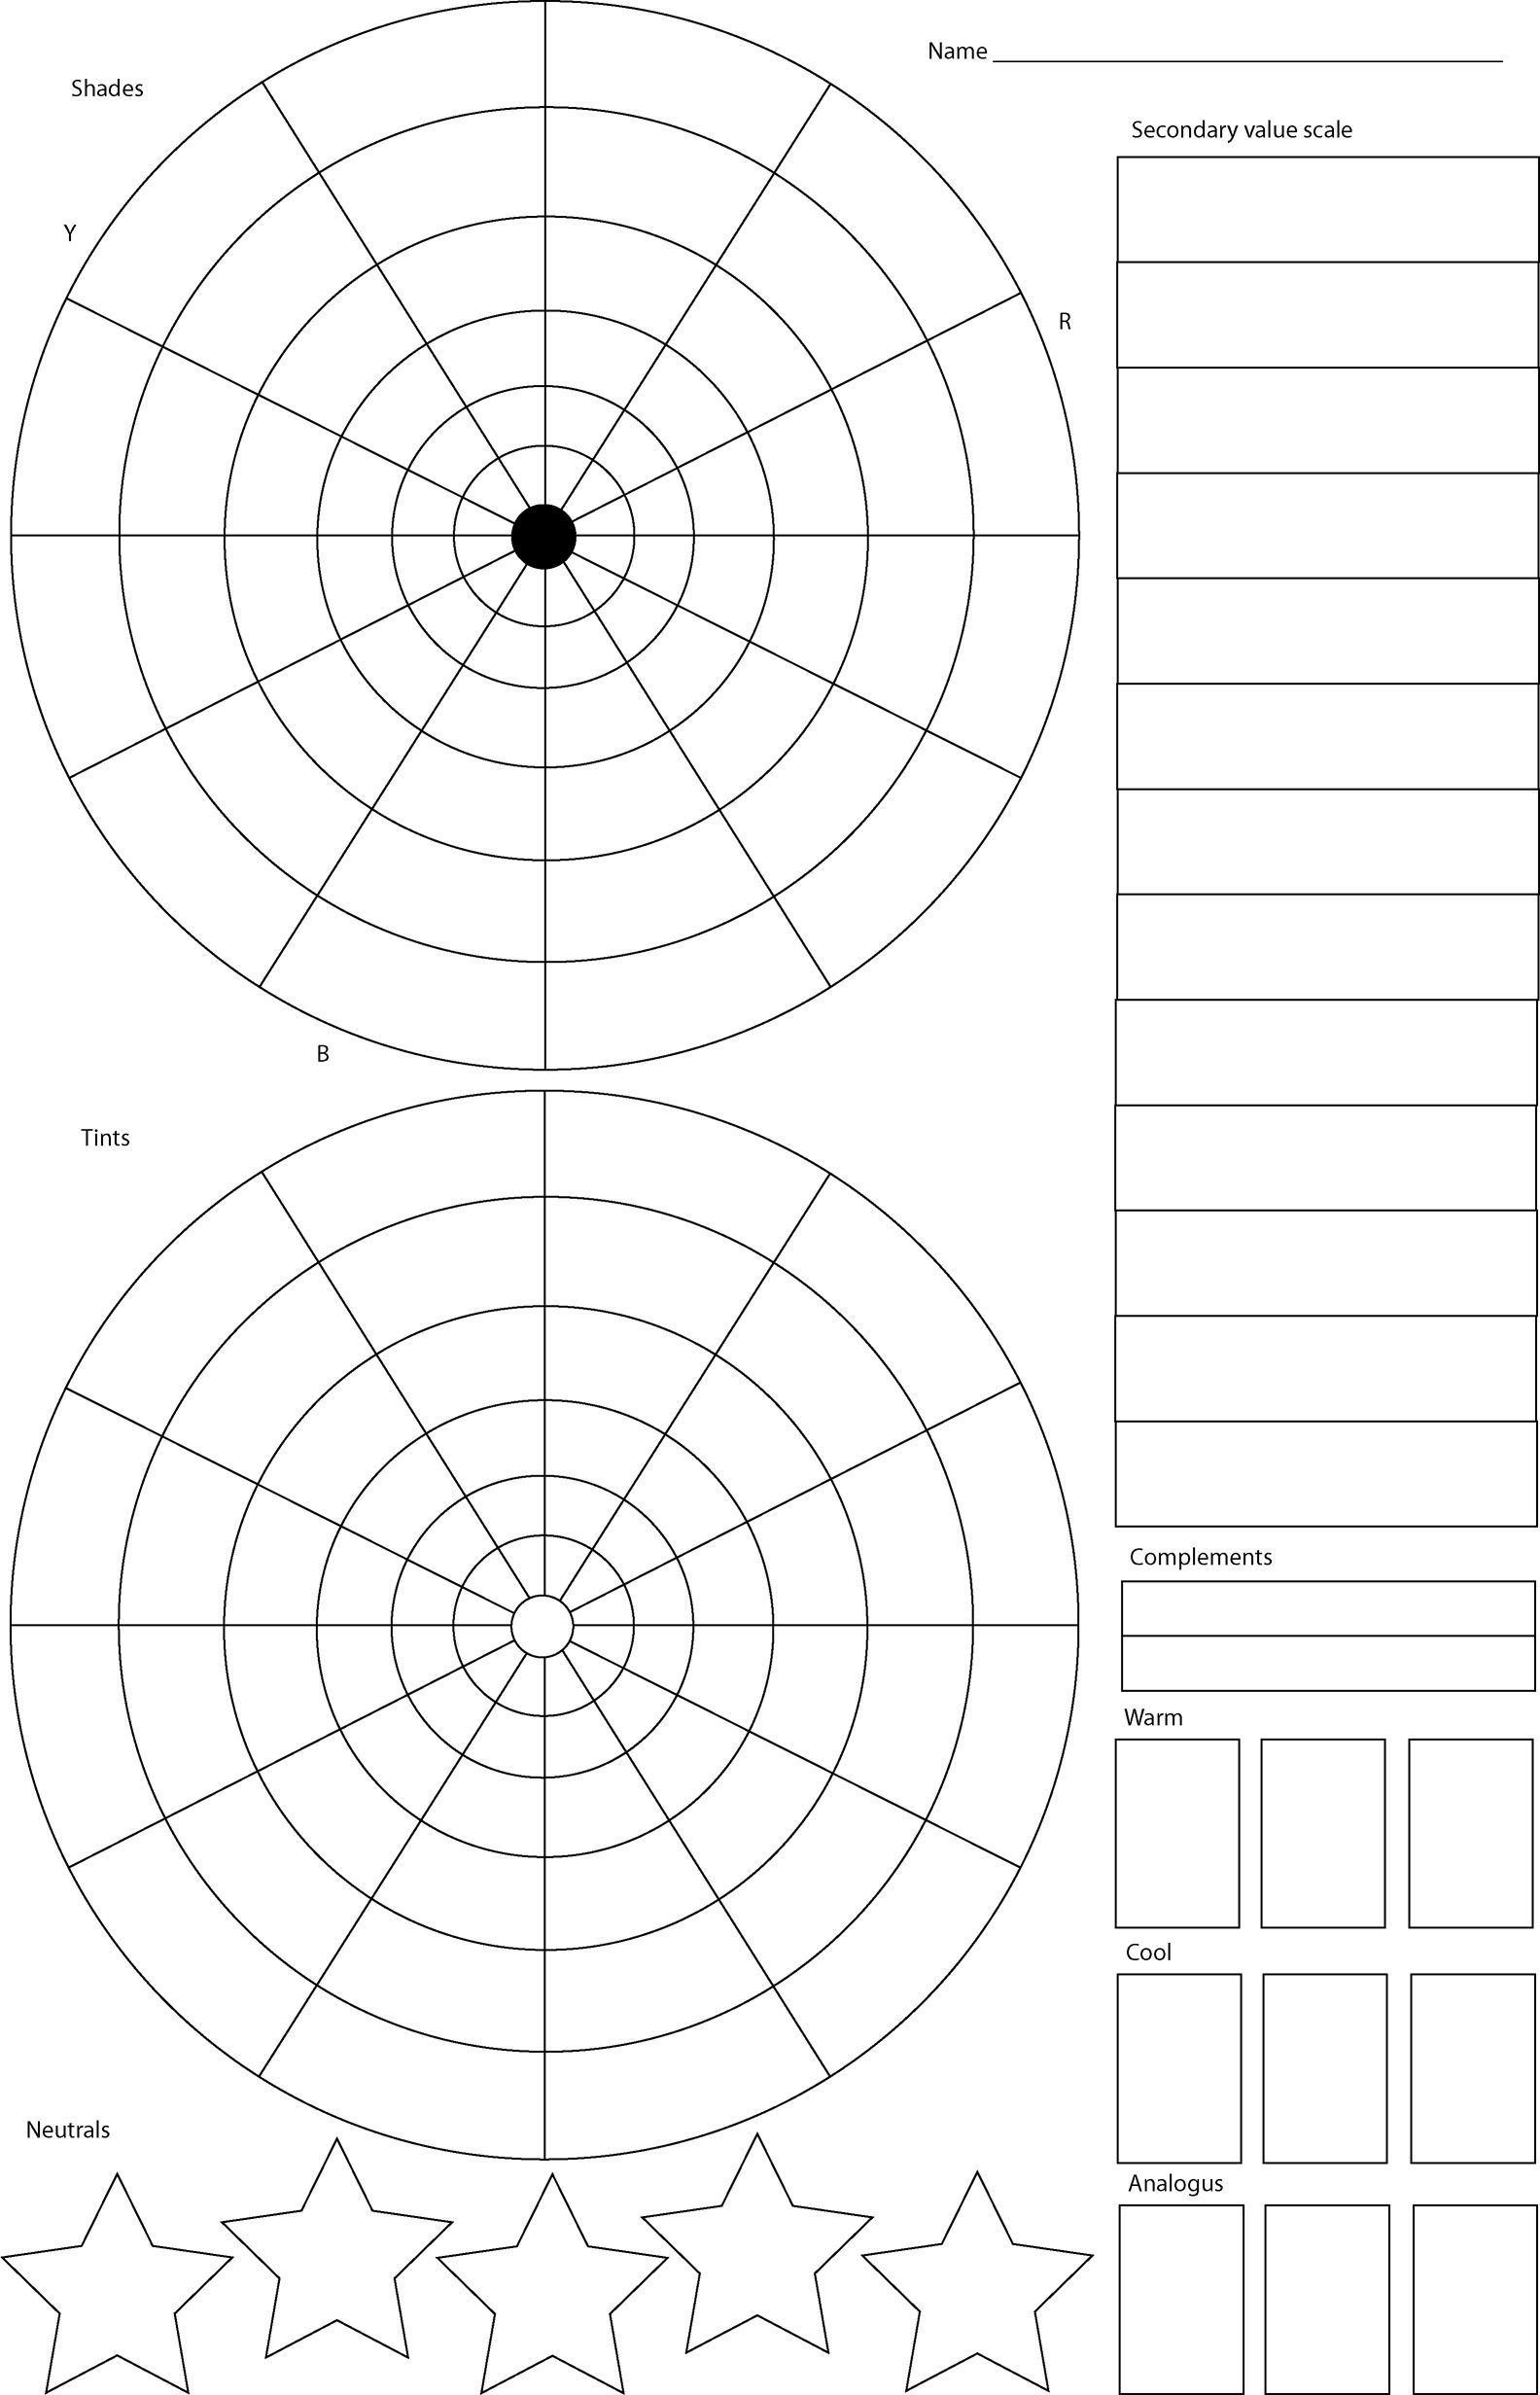 worksheet Value Scale Worksheet color wheel worksheet pin for pinterest art printables pinterest